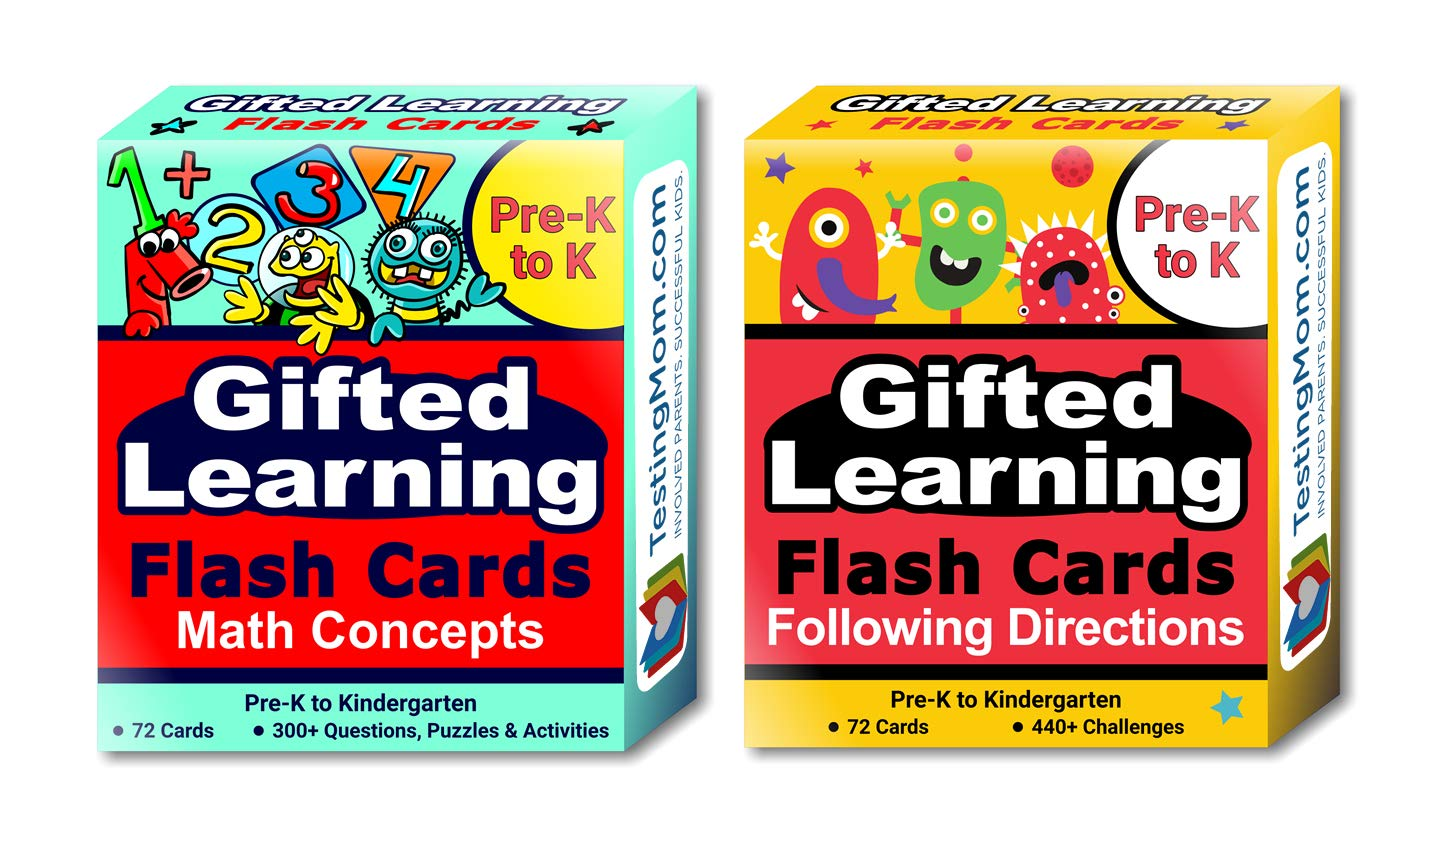 Gifted Learning Flash Cards (2-Pack) - Math and Following Directions for Pre-K - Kindergarten - Gifted and Talented Educational Toy Practice for CogAT, OLSAT, Iowa, SCAT, WISC, ERB, WPPSI and more by TestingMom.com